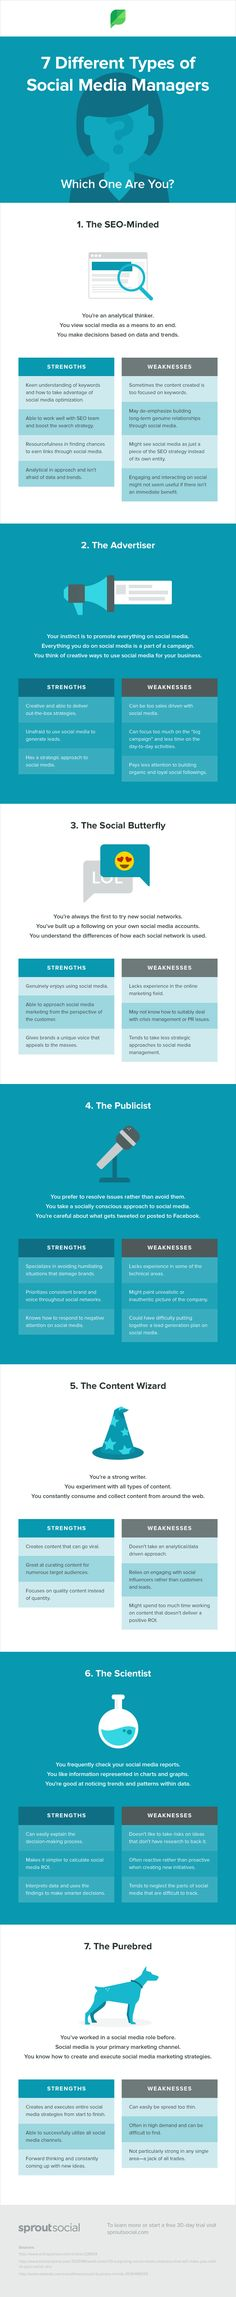 The 7 Different Types of Community Managers: Which One Are You? - #infographic…